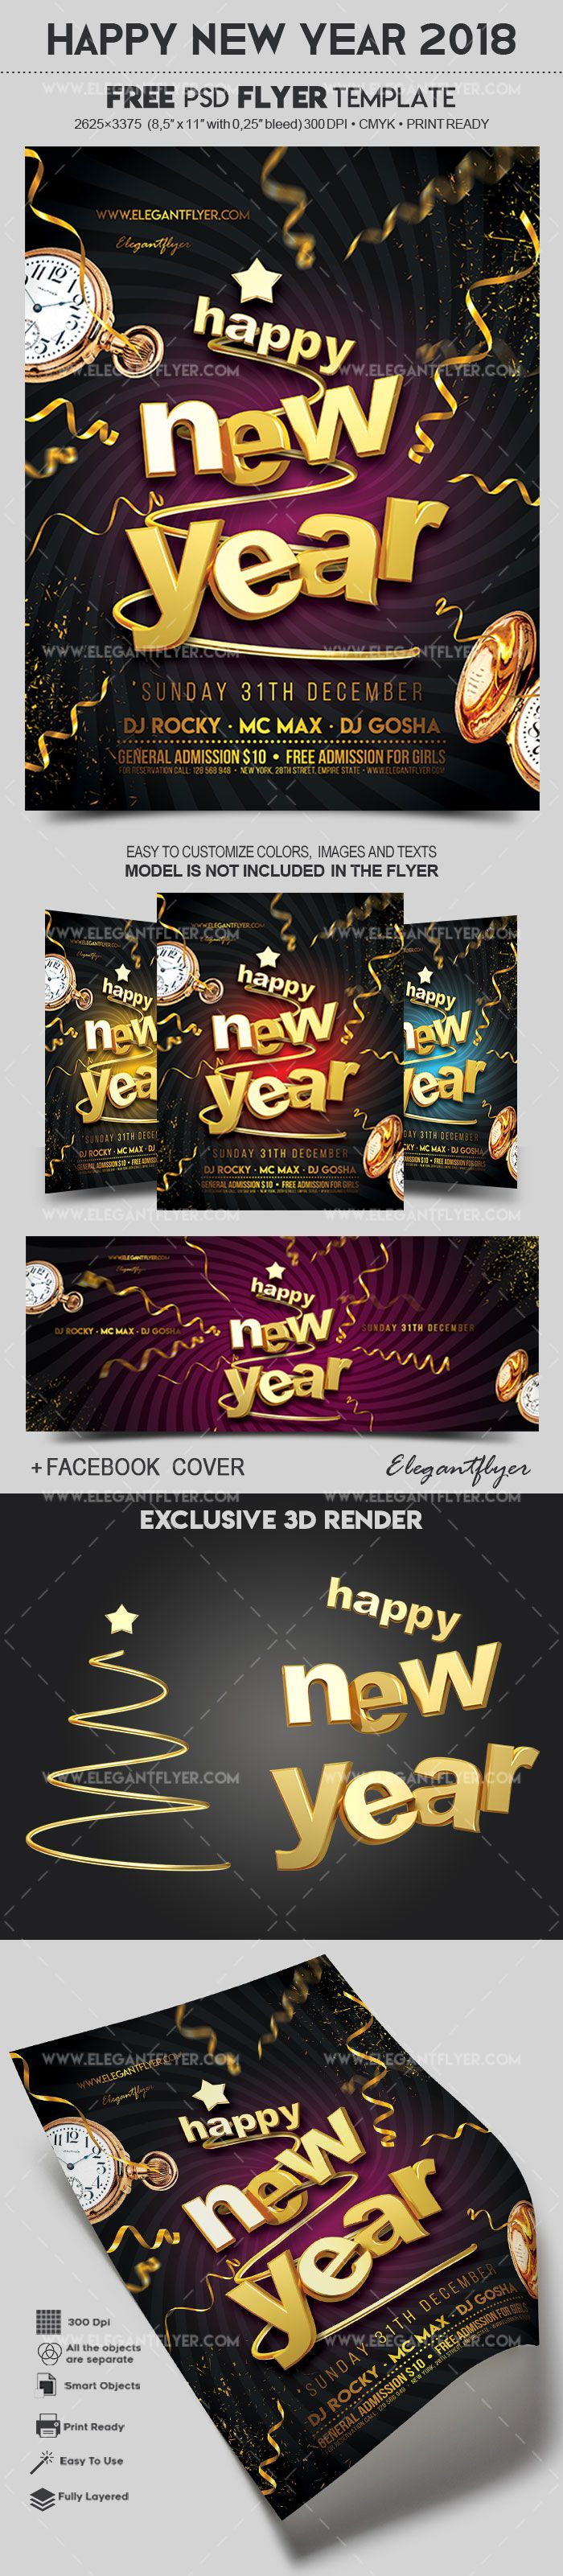 https://www.elegantflyer.com/free-flyers/happy-new-year-2018-free-flyer-psd-template-facebook-cover/